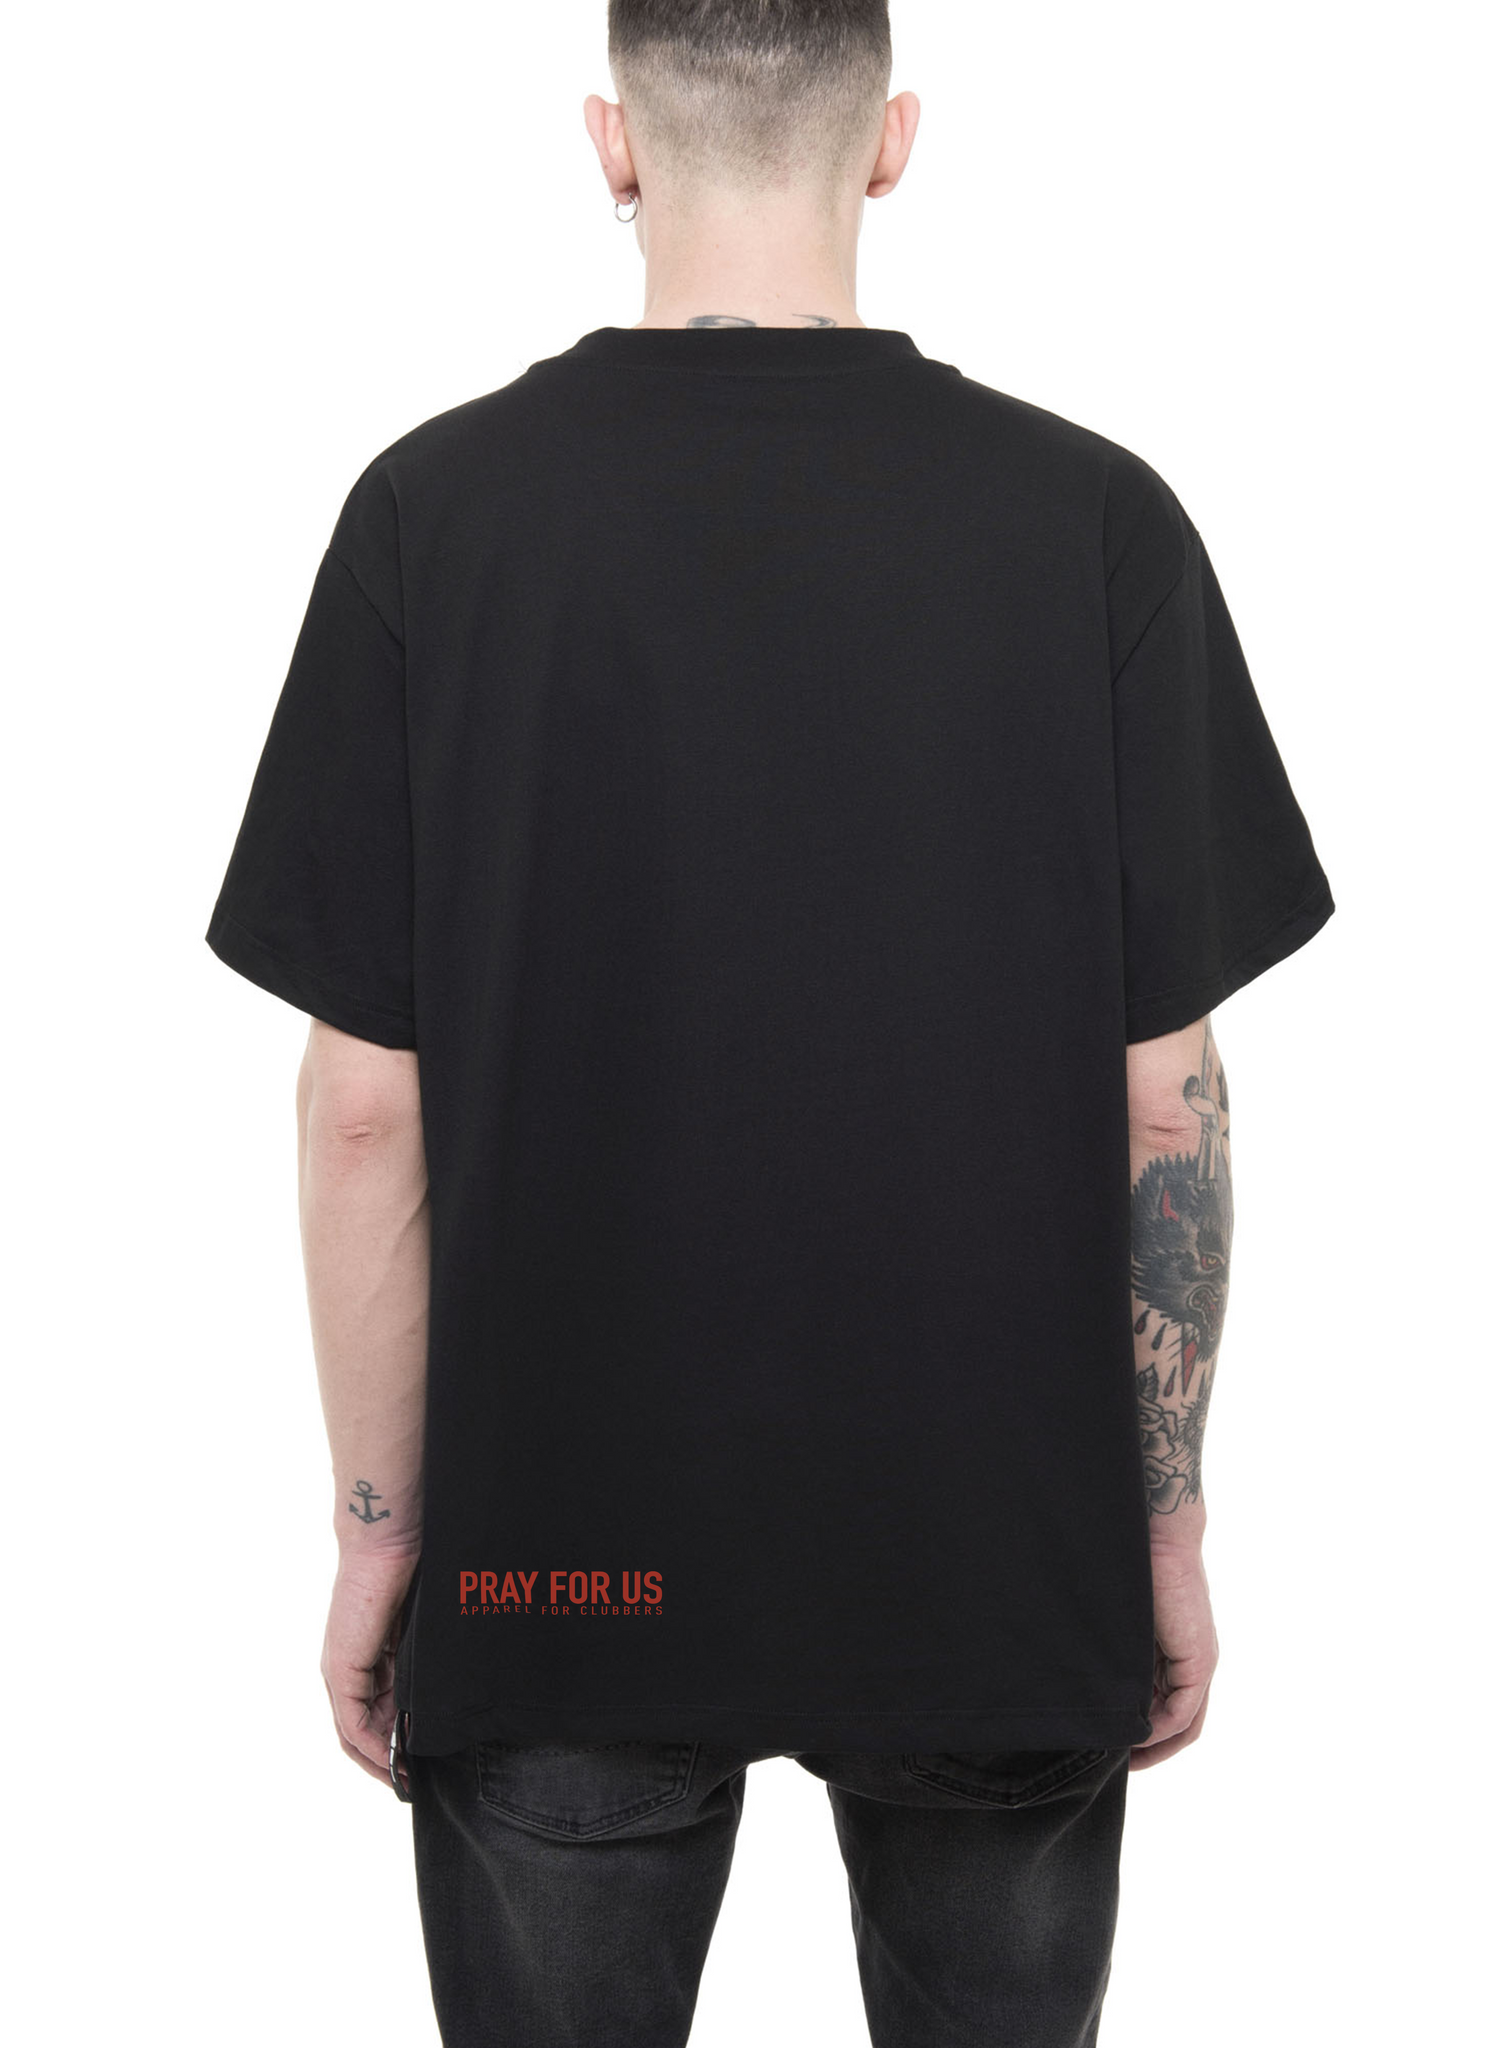 PRAY FOR US ™ - P-FACE ss19 T-Shirt